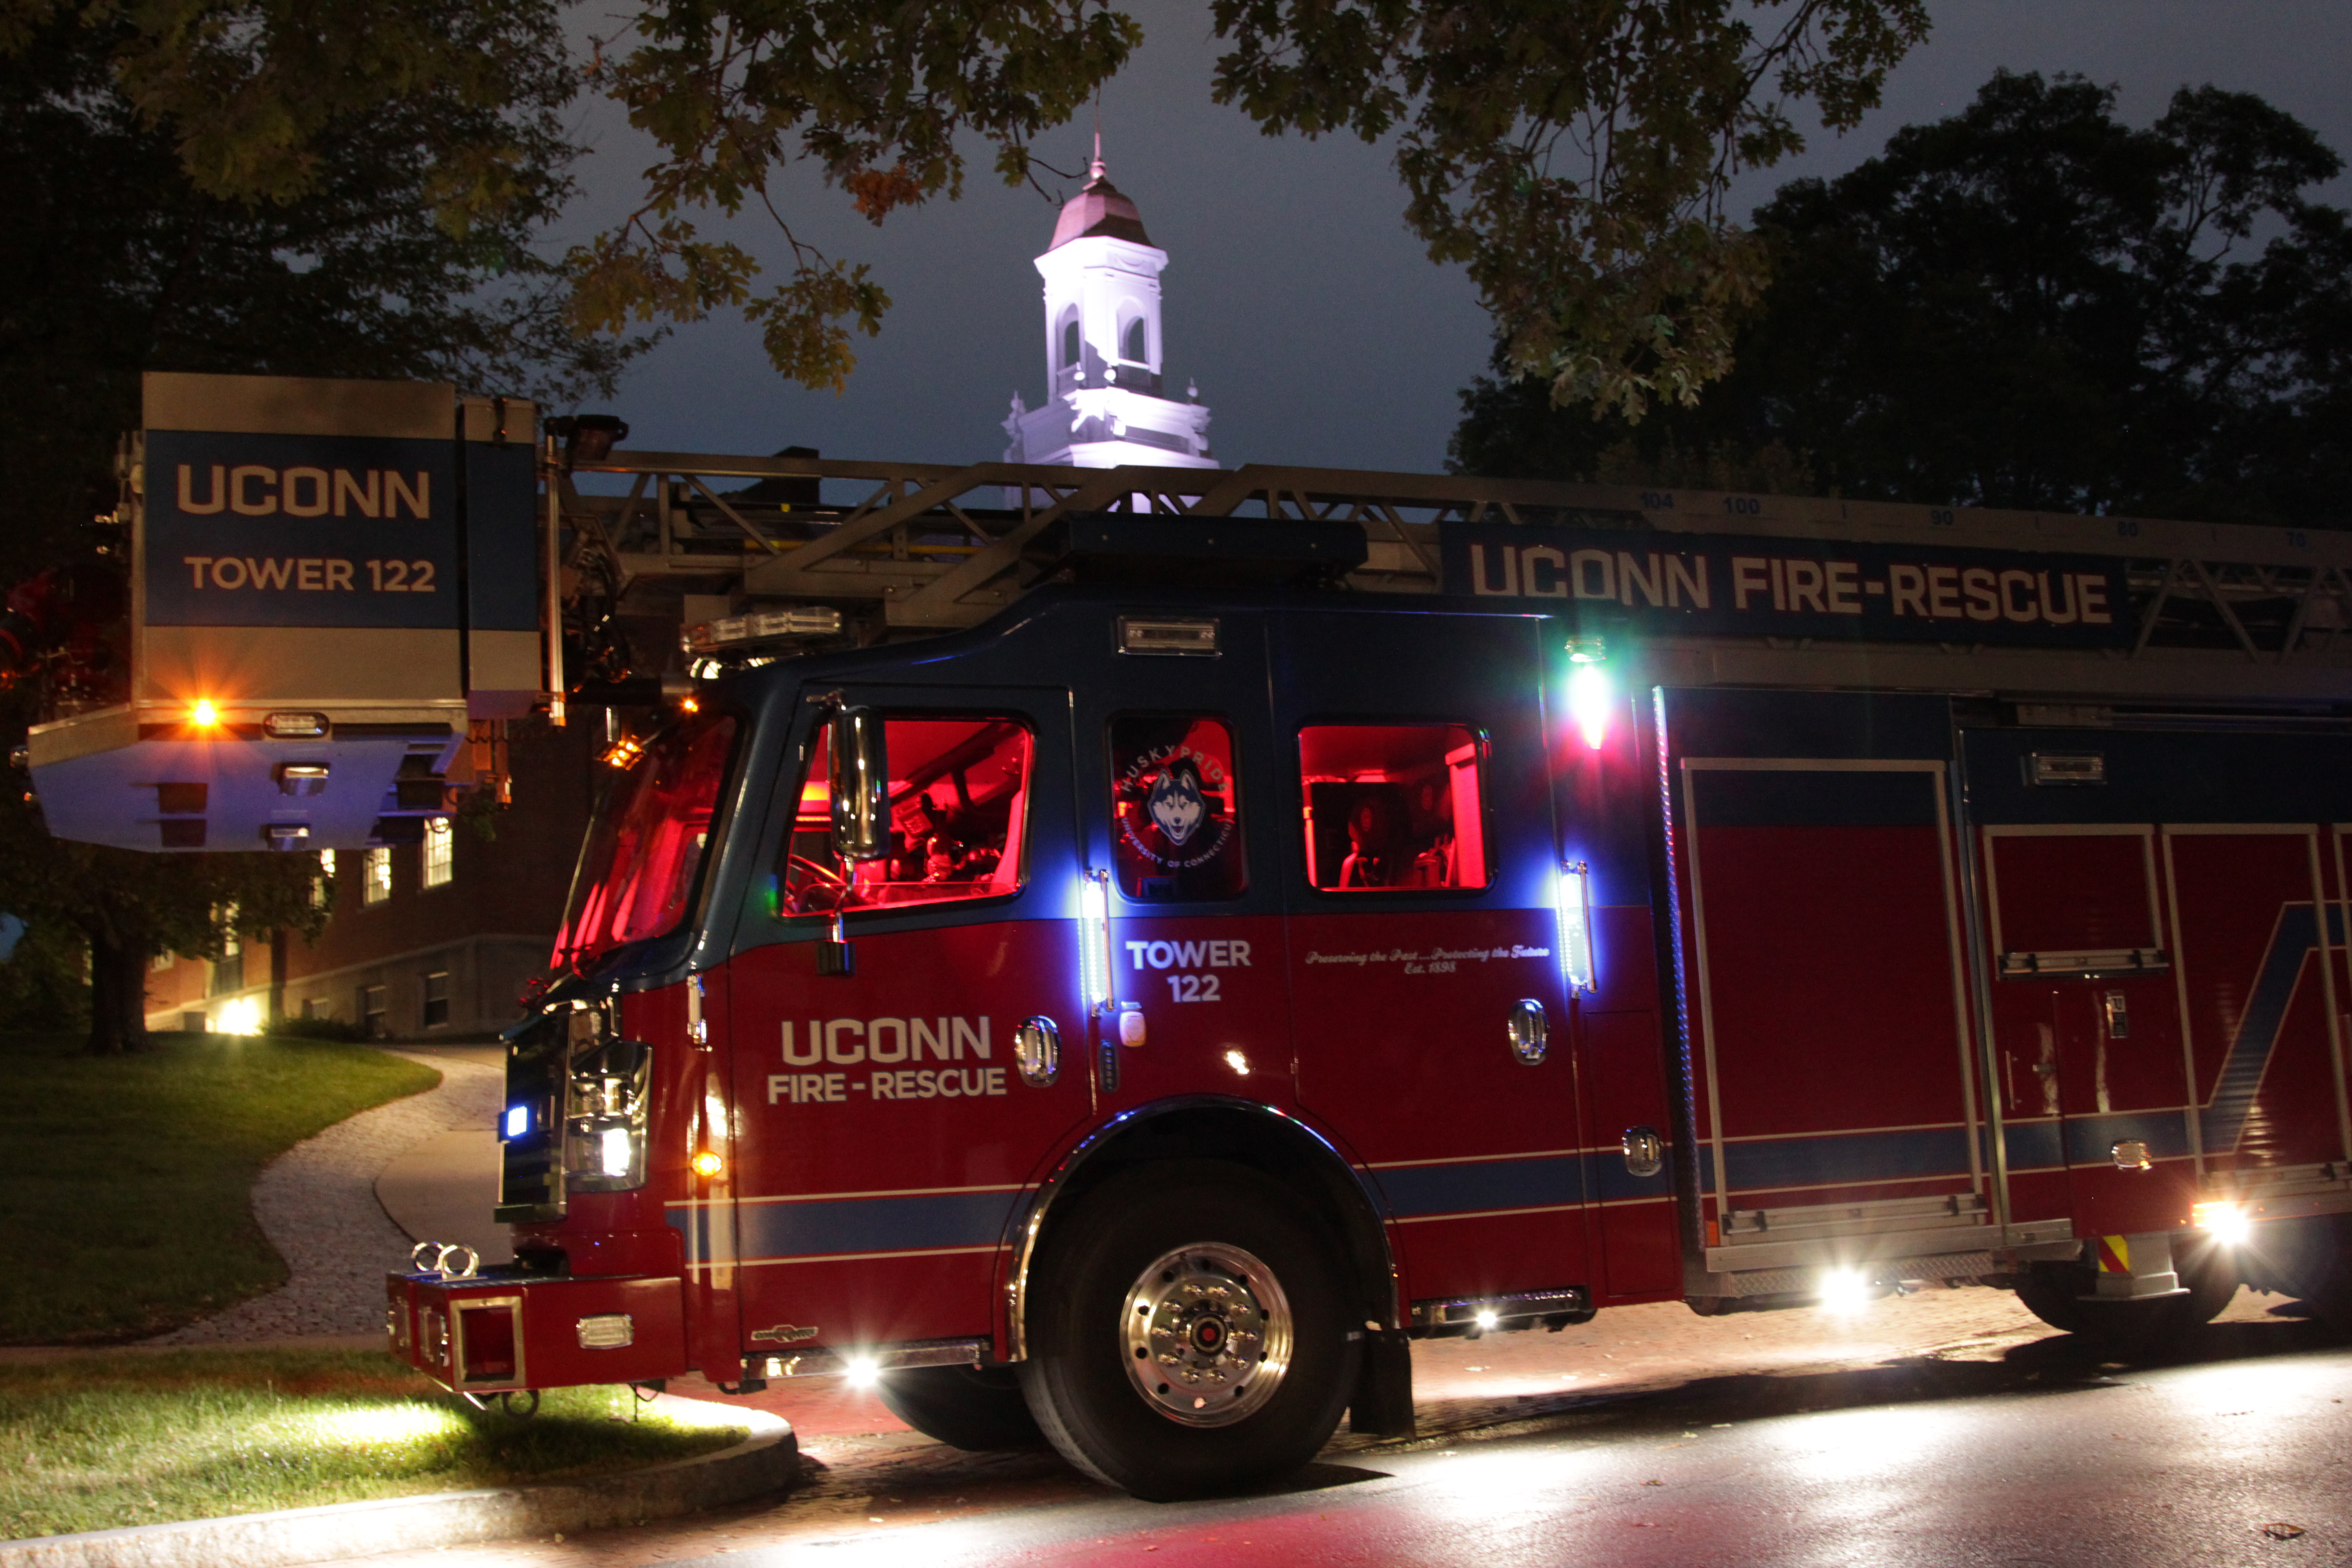 The University recently purchased a new fire tower truck that will enable firefighters to access even the top floor of the highest residence halls. (Rob Babcock/UConn Photo)